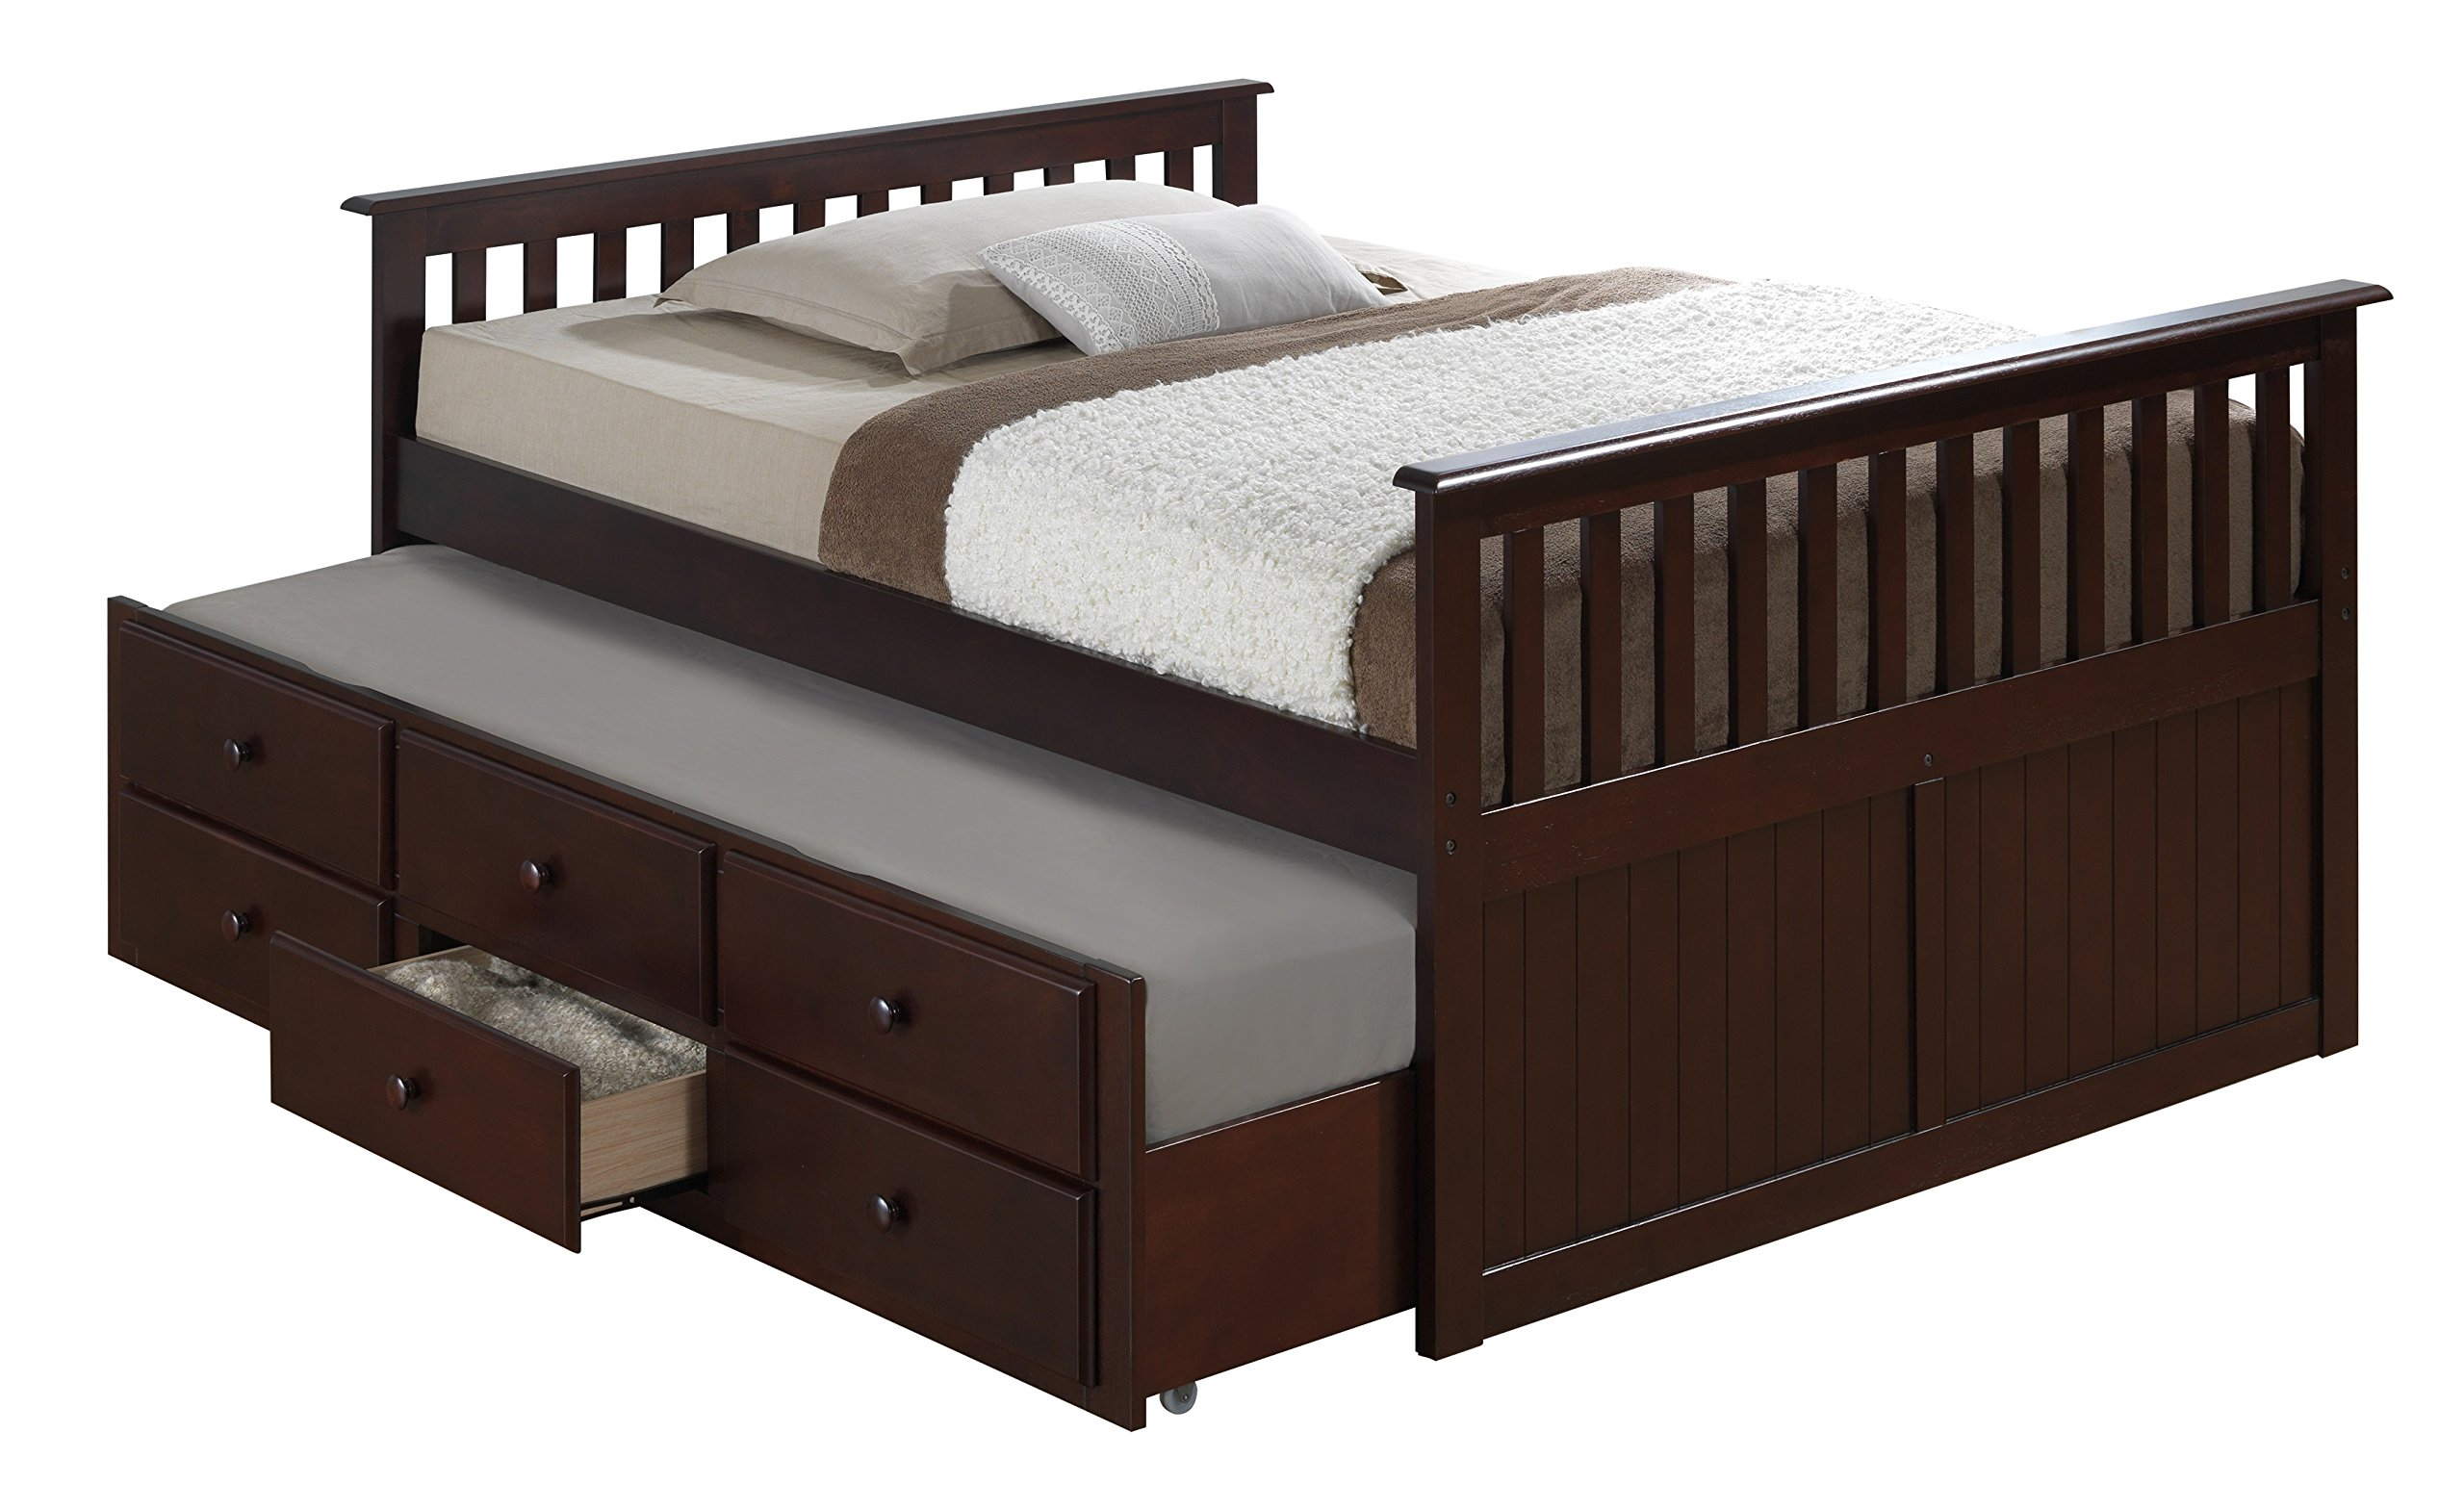 Broyhill Kids Marco Island Full Captain's Bed with Trundle, Espresso Full-Sized Bed with Twin-Sized Trundle, Bunk Bed Alternative, Great for Sleepovers, Underbed Storage/Organization by Stork Craft